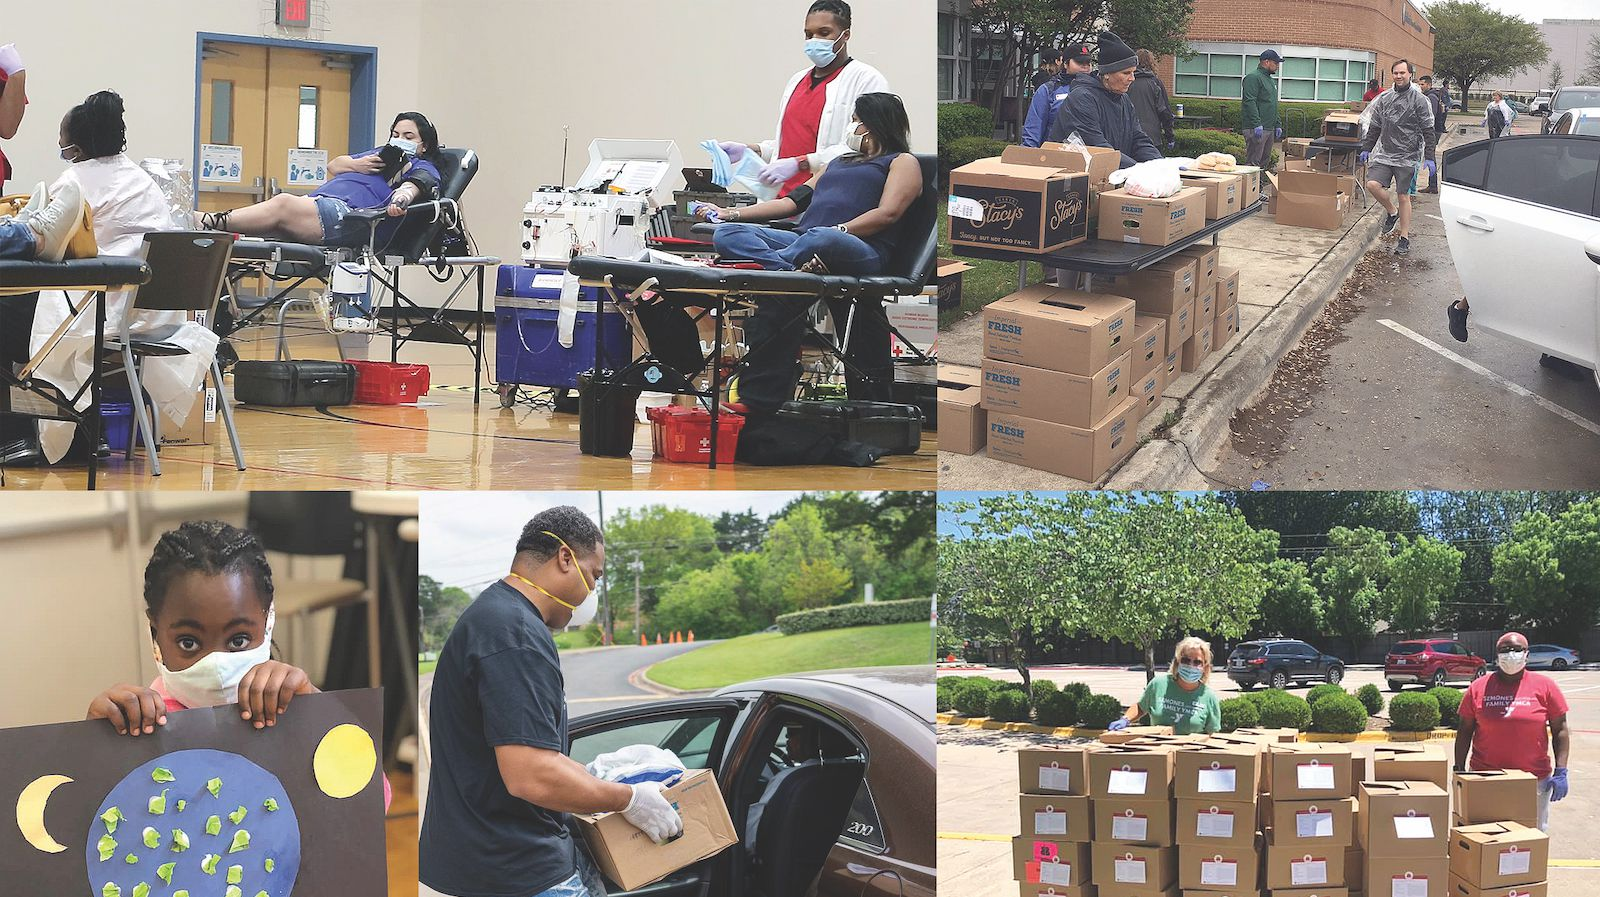 From after-school programs for students to sports activities for adults, life-saving blood drives to hunger-ending food drives, the YMCA of Metropolitan Dallas impacts the community in far-reaching ways.